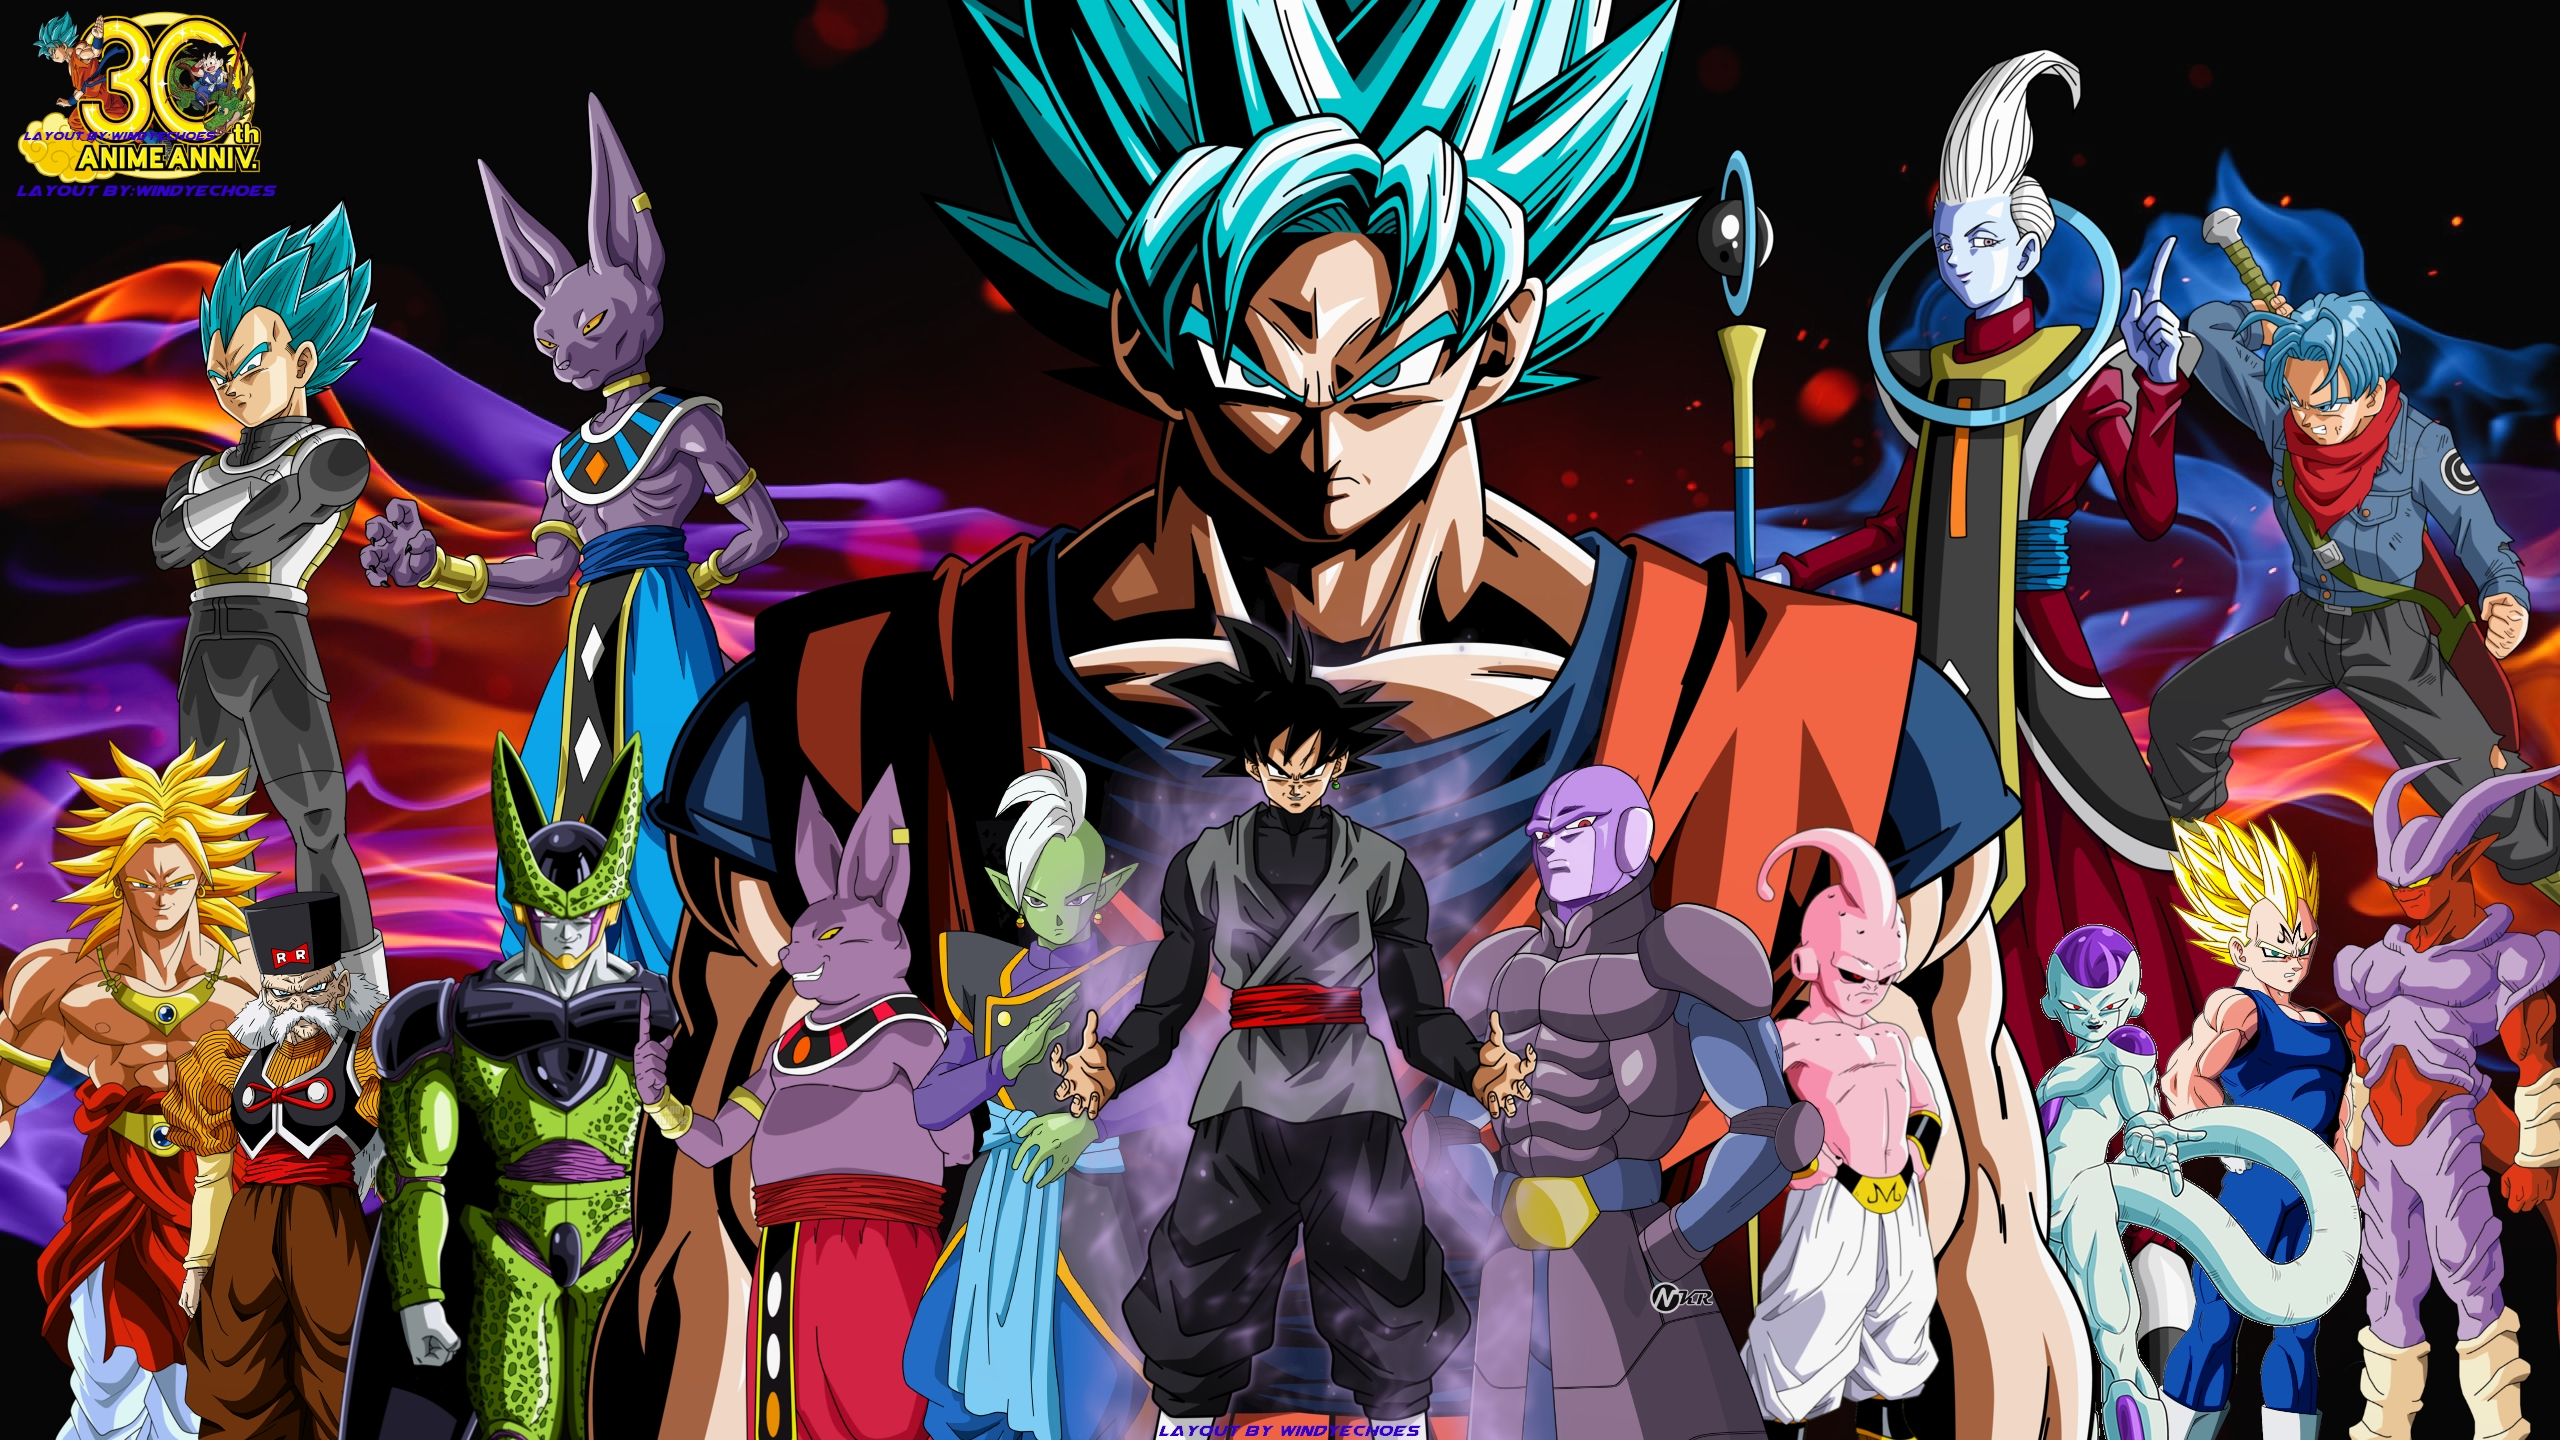 dragon ball super full hd wallpaper and background image | 2560x1440